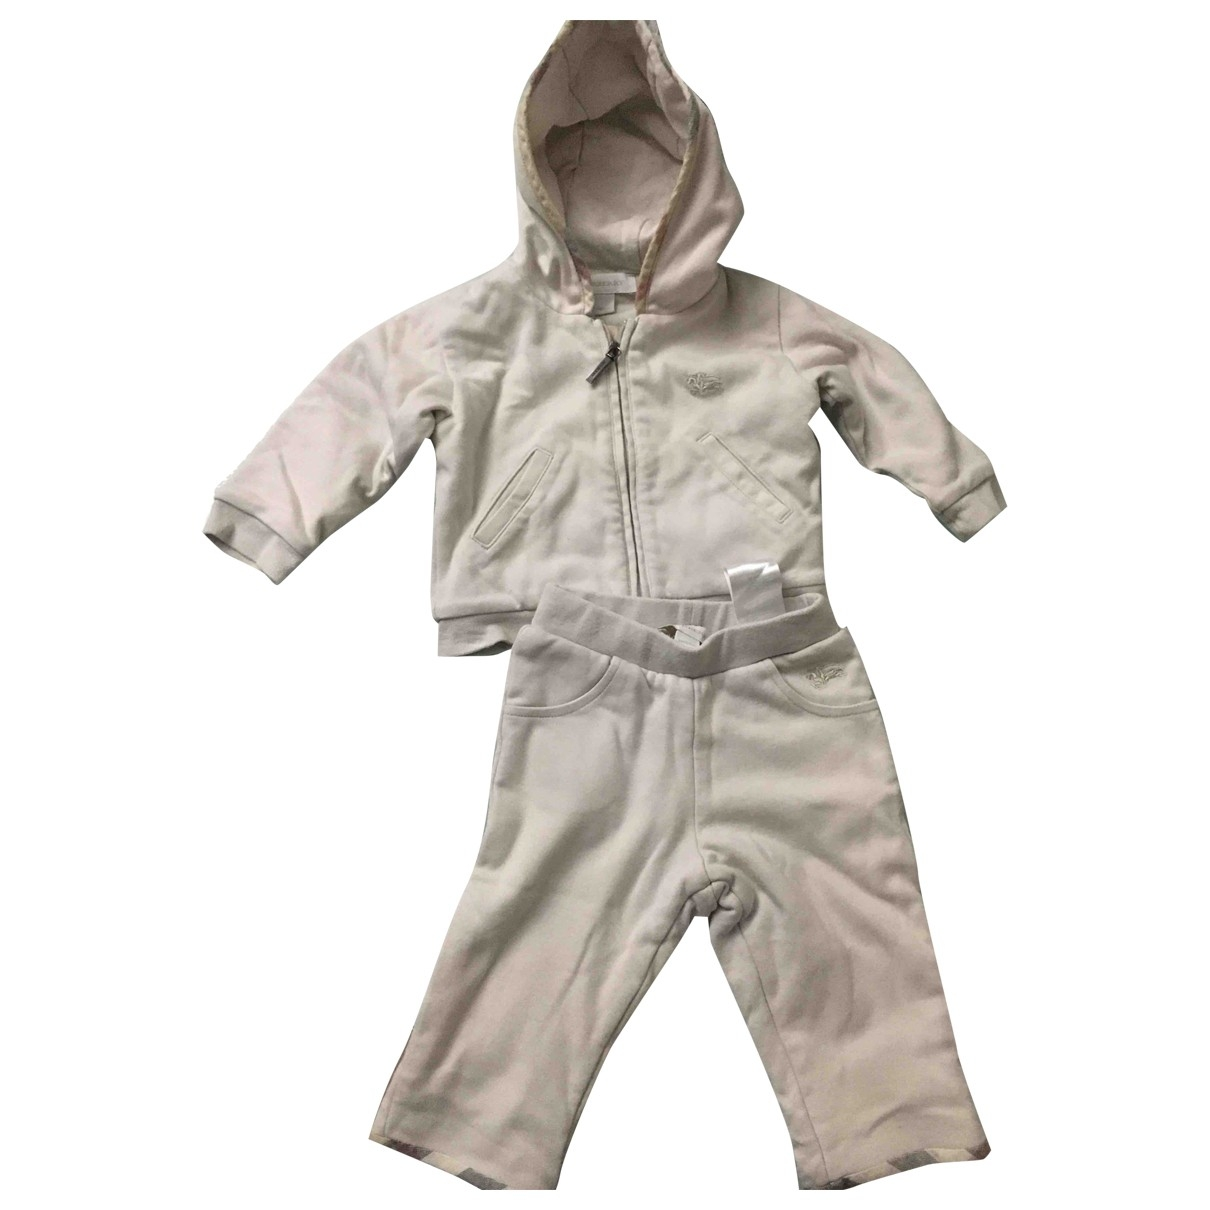 Burberry \N Beige Cotton Outfits for Kids 6 months - up to 67cm FR